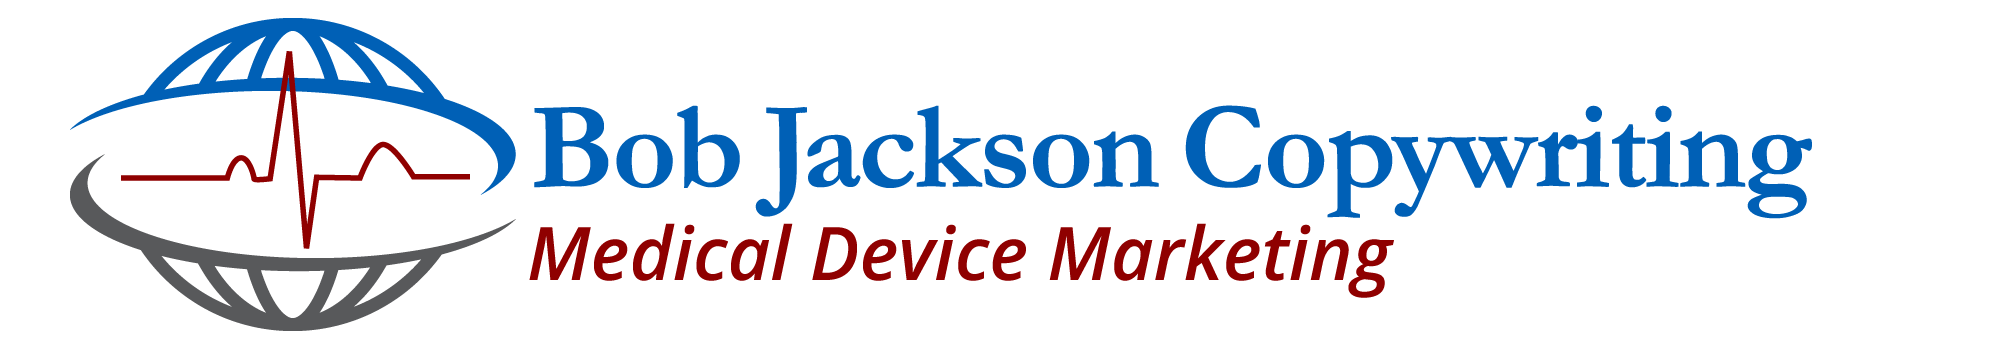 Bob Jackson Medical Device Copywriting